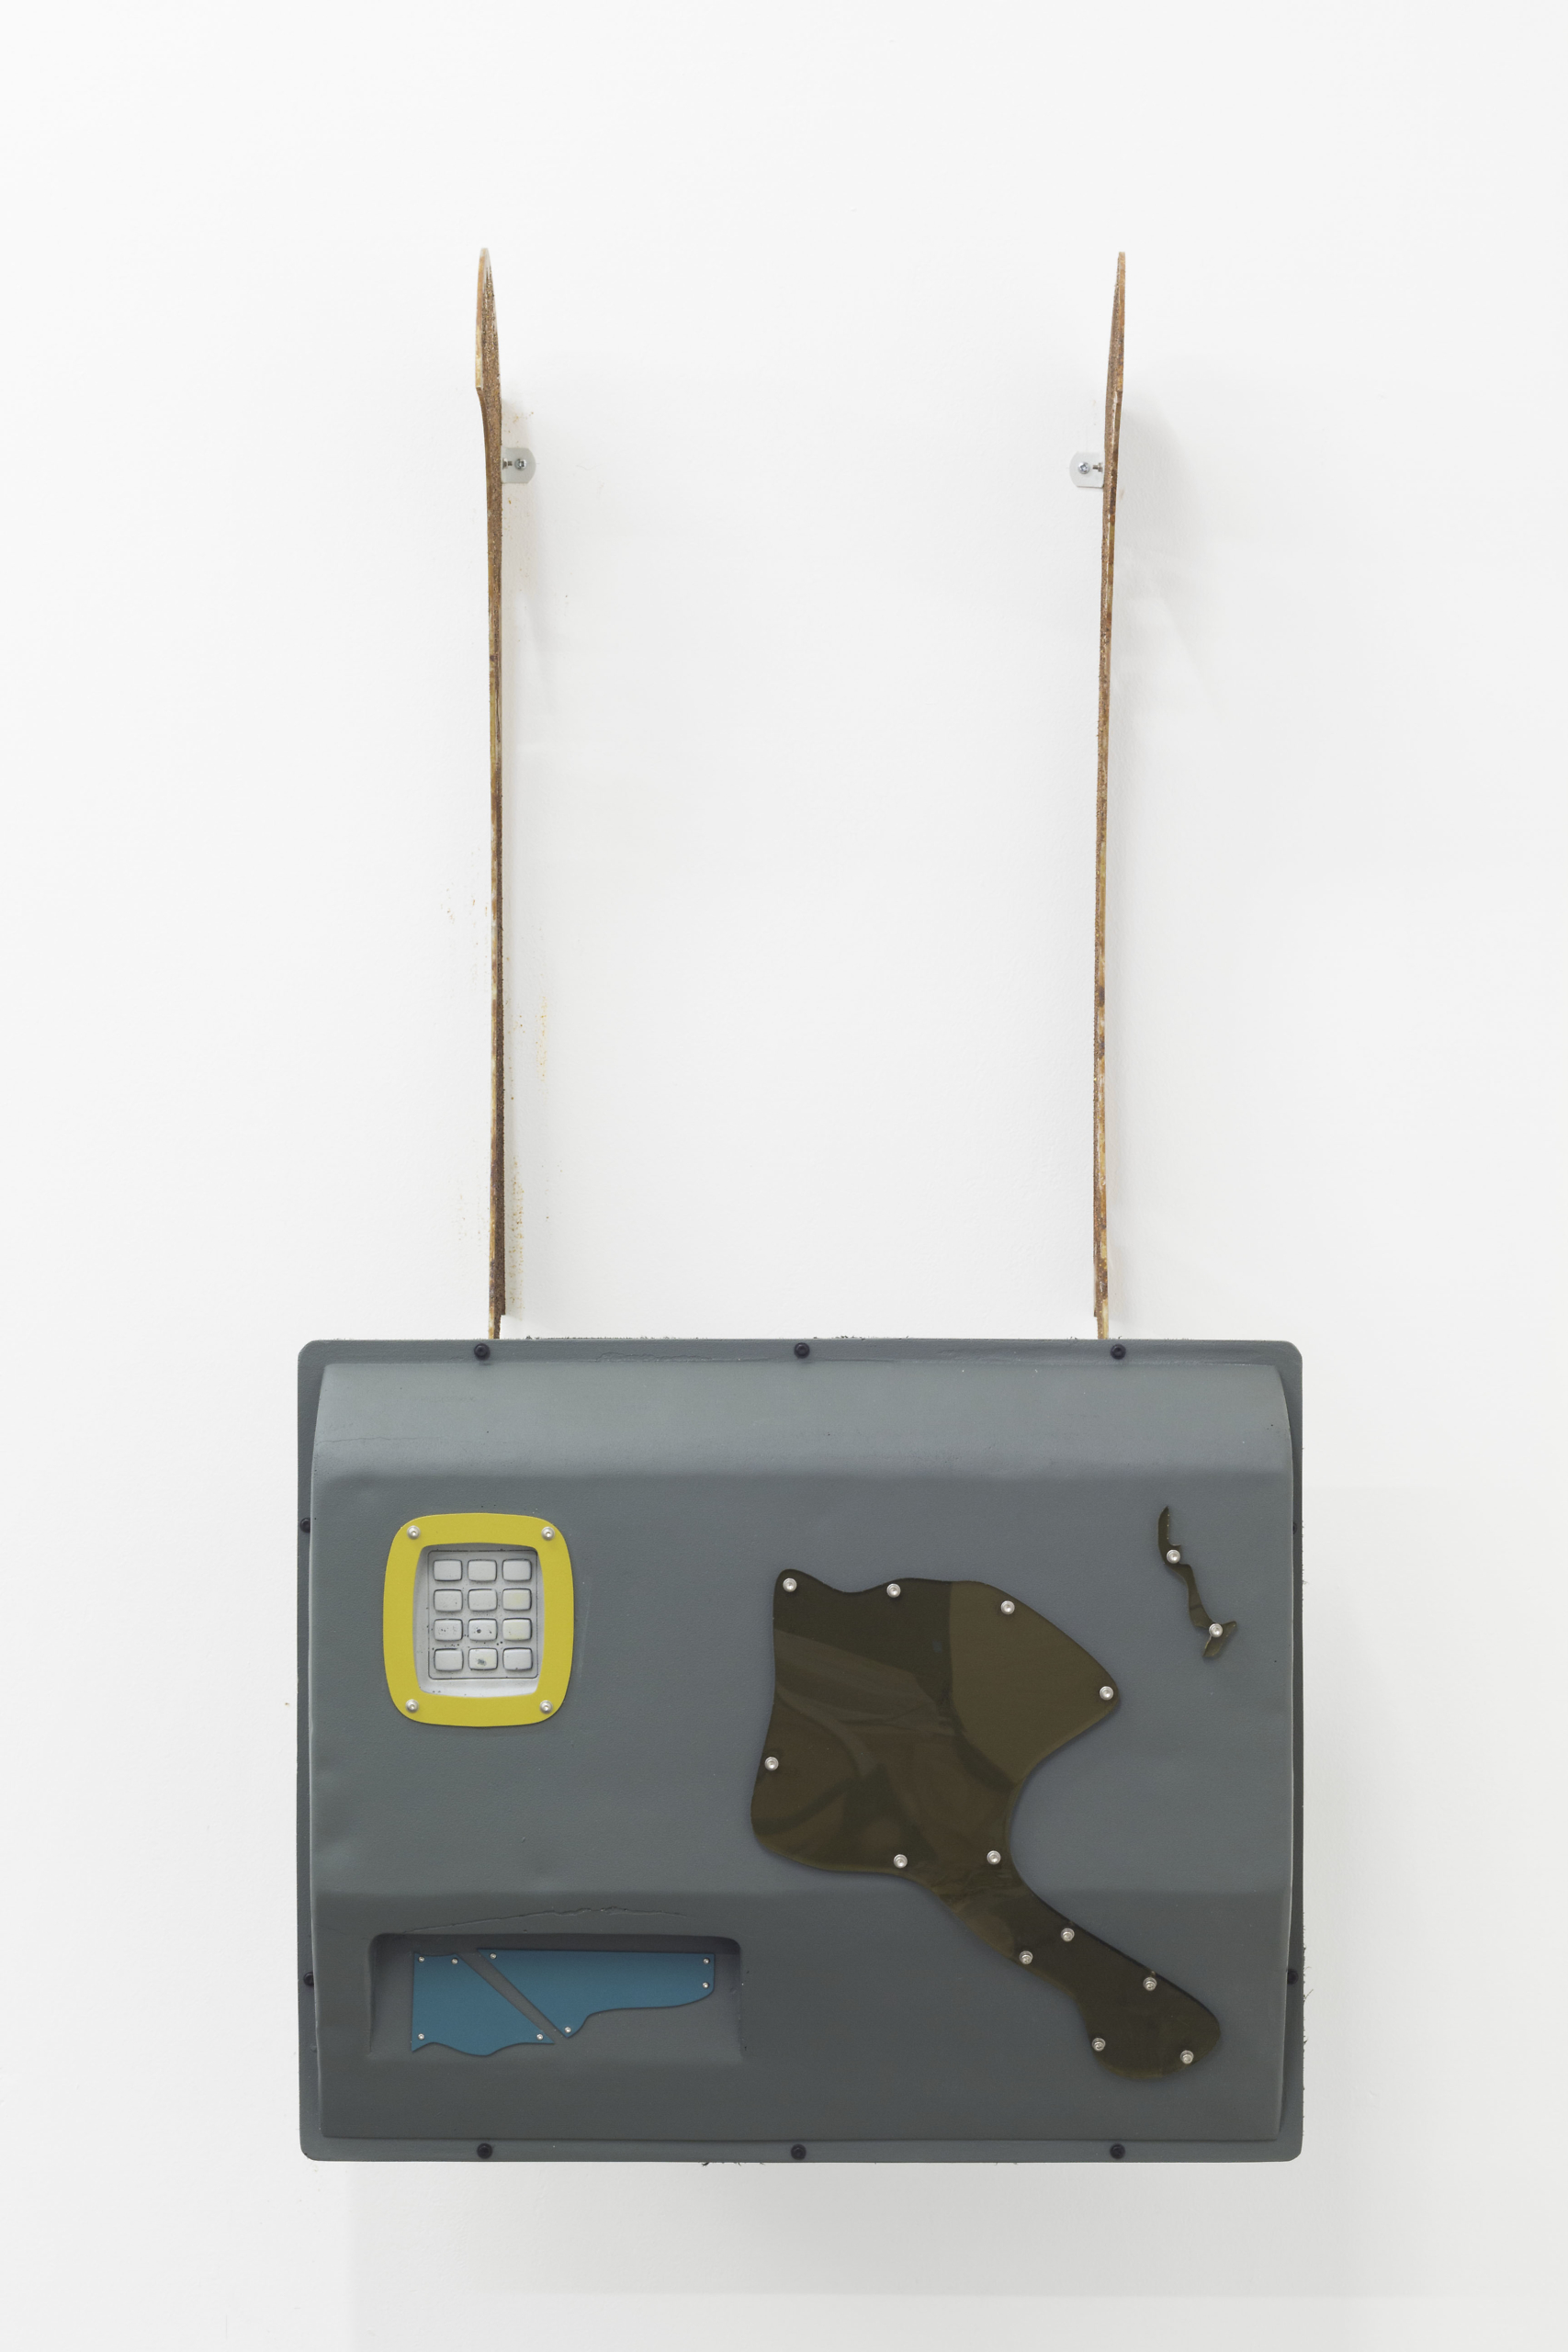 Hanae Wilke, Interface III, 2018. Epoxy resin, fibreglass, steel, aerosol paint, silicone rubber, acrylic sheet, polymer plaster. 60 x 100 x 40 cm.